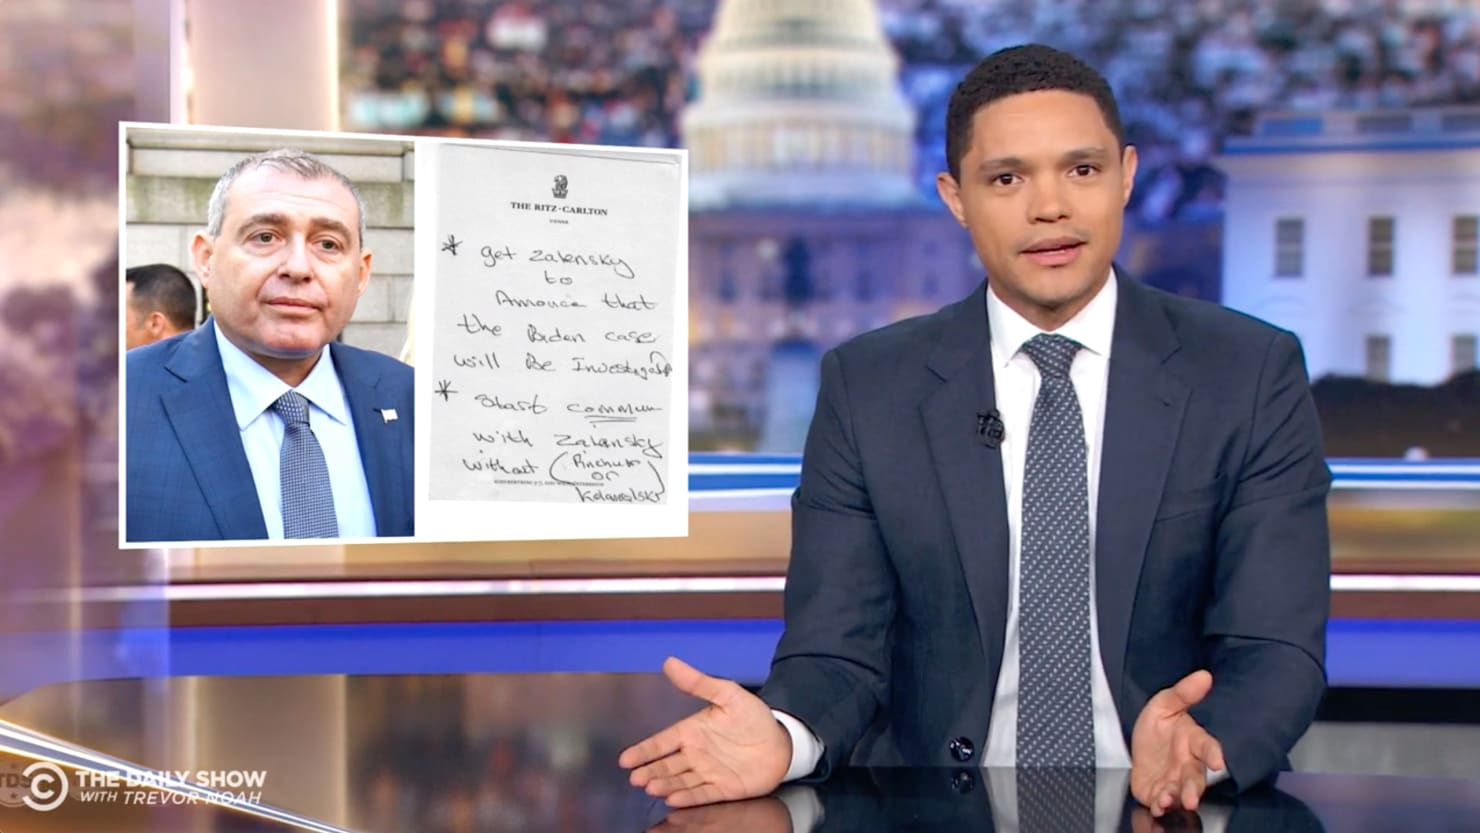 Trevor Noah Roasts Trump and Rudy Giuliani for Hiring Terrible 'Criminal' Lev Parnas